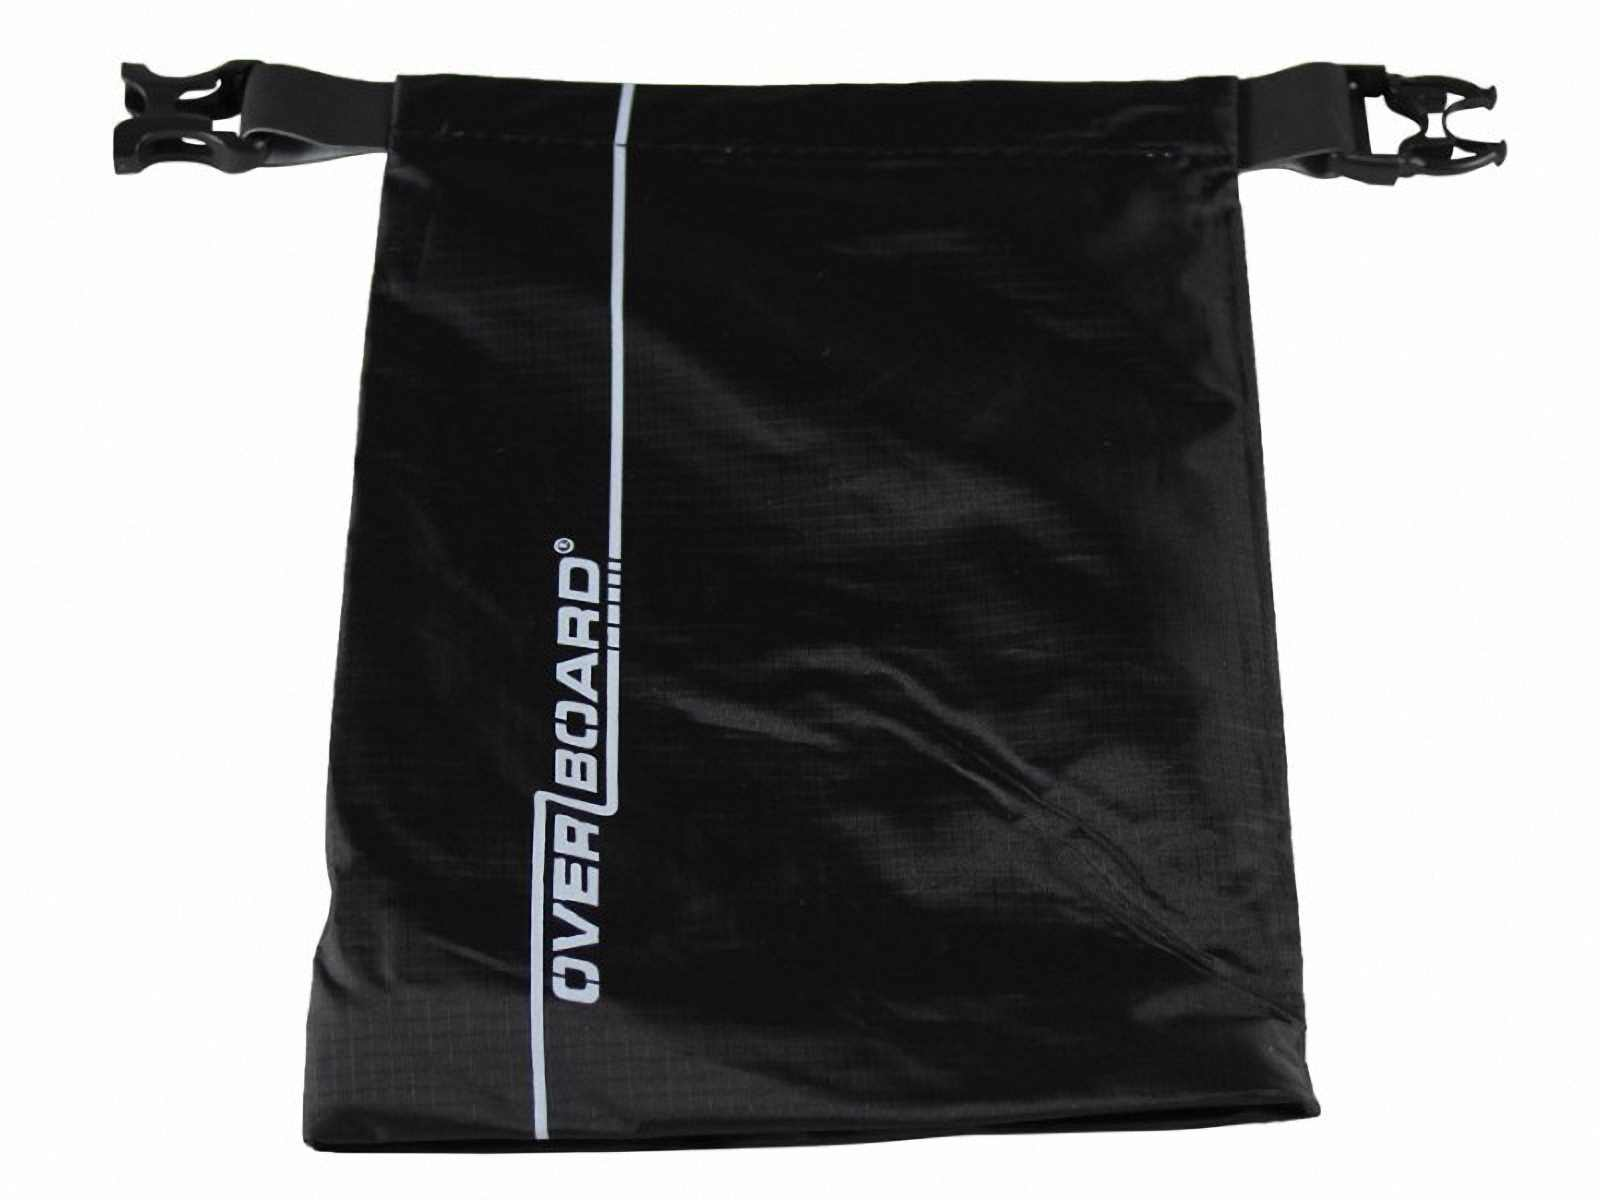 Водонепроницаемый гермомешок OverBoard OB1031BLK - Waterproof Dry Pouch - 1L (Black) Фото 4